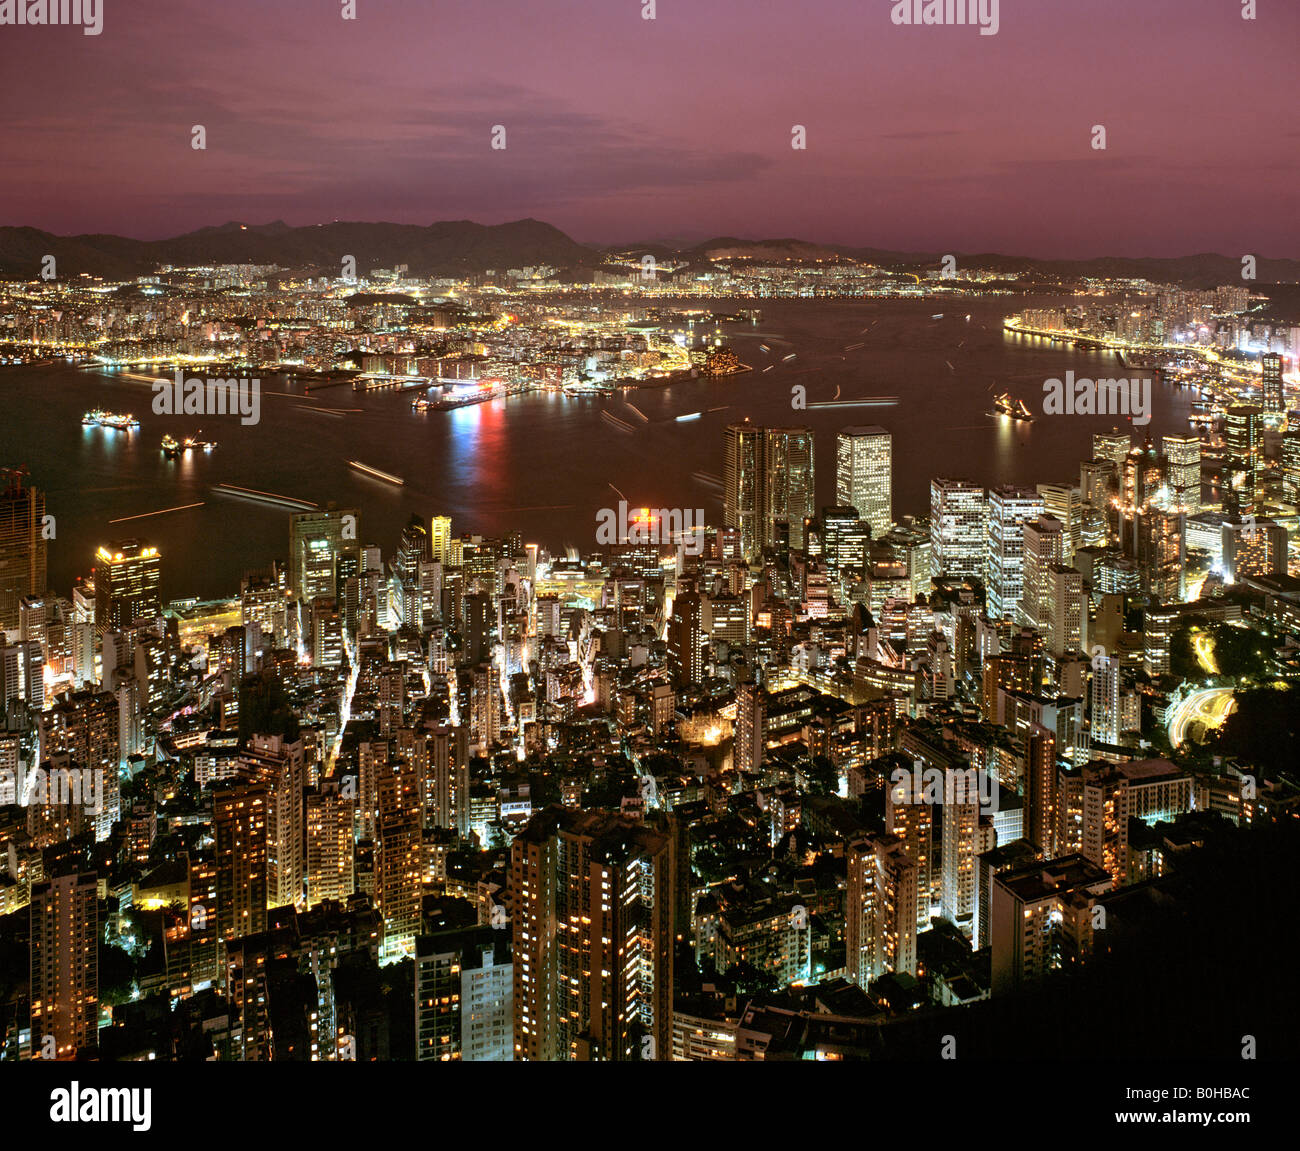 Hong Kong skyline, dusk, view from Victoria Peak over Central Victoria Island, Hong Kong, China - Stock Image